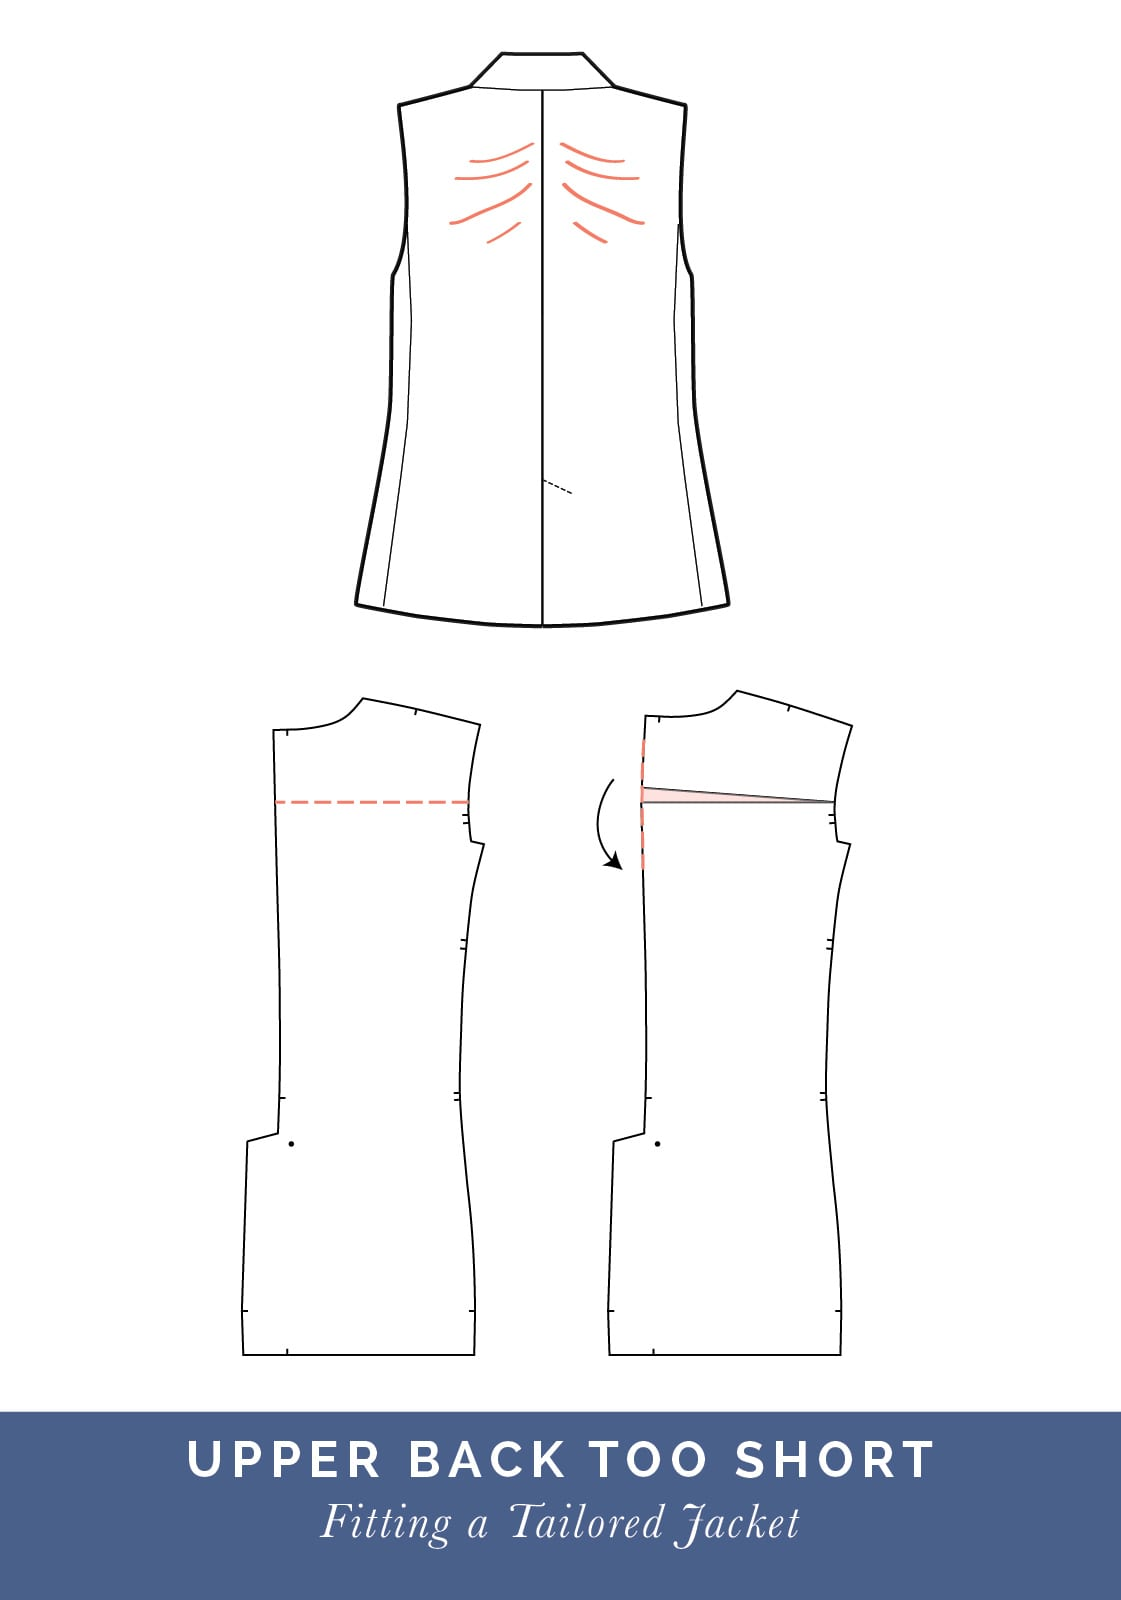 Upper back too short // How to fit a Tailored jacket or Blazer // Fit adjustment issues and fixes